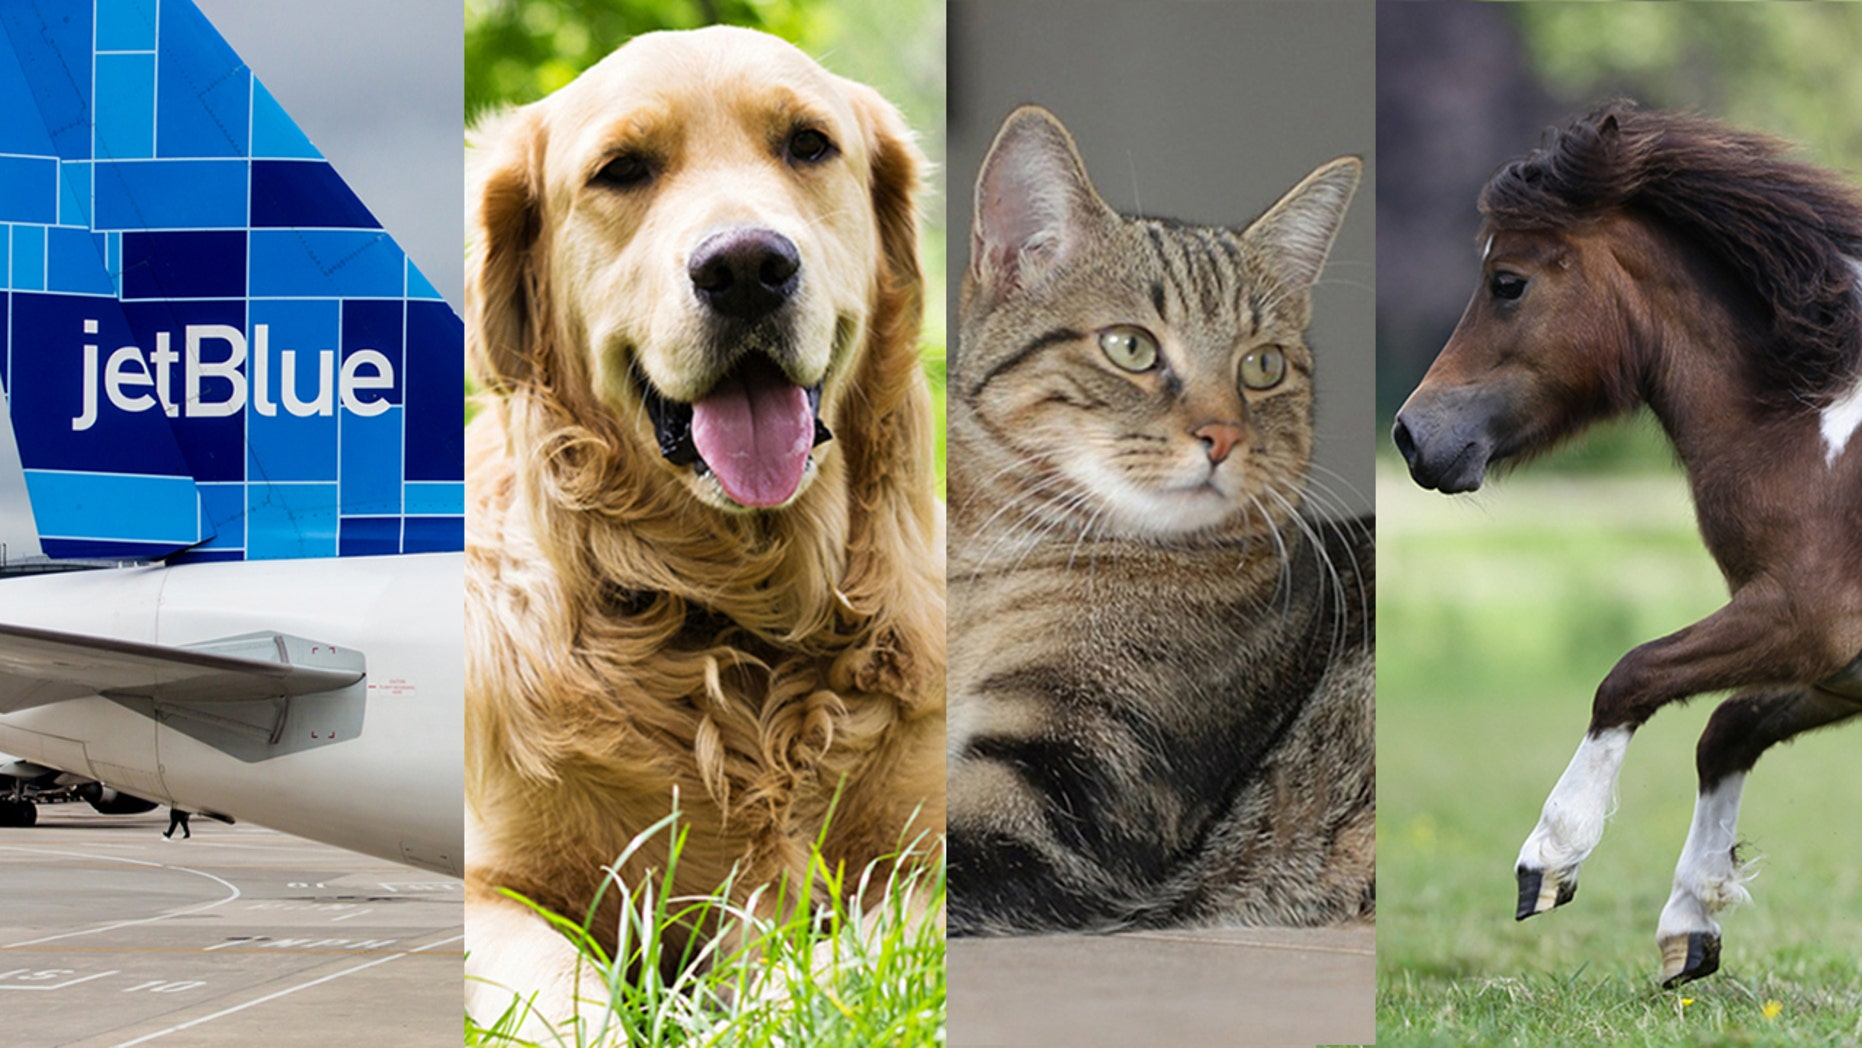 Image of: Certapet Jetblue Changing Emotional Support Animal Policy Adding Requirements For Additional Documentation Bubble Paws Jetblue Changing Emotional Support Animal Policy Adding